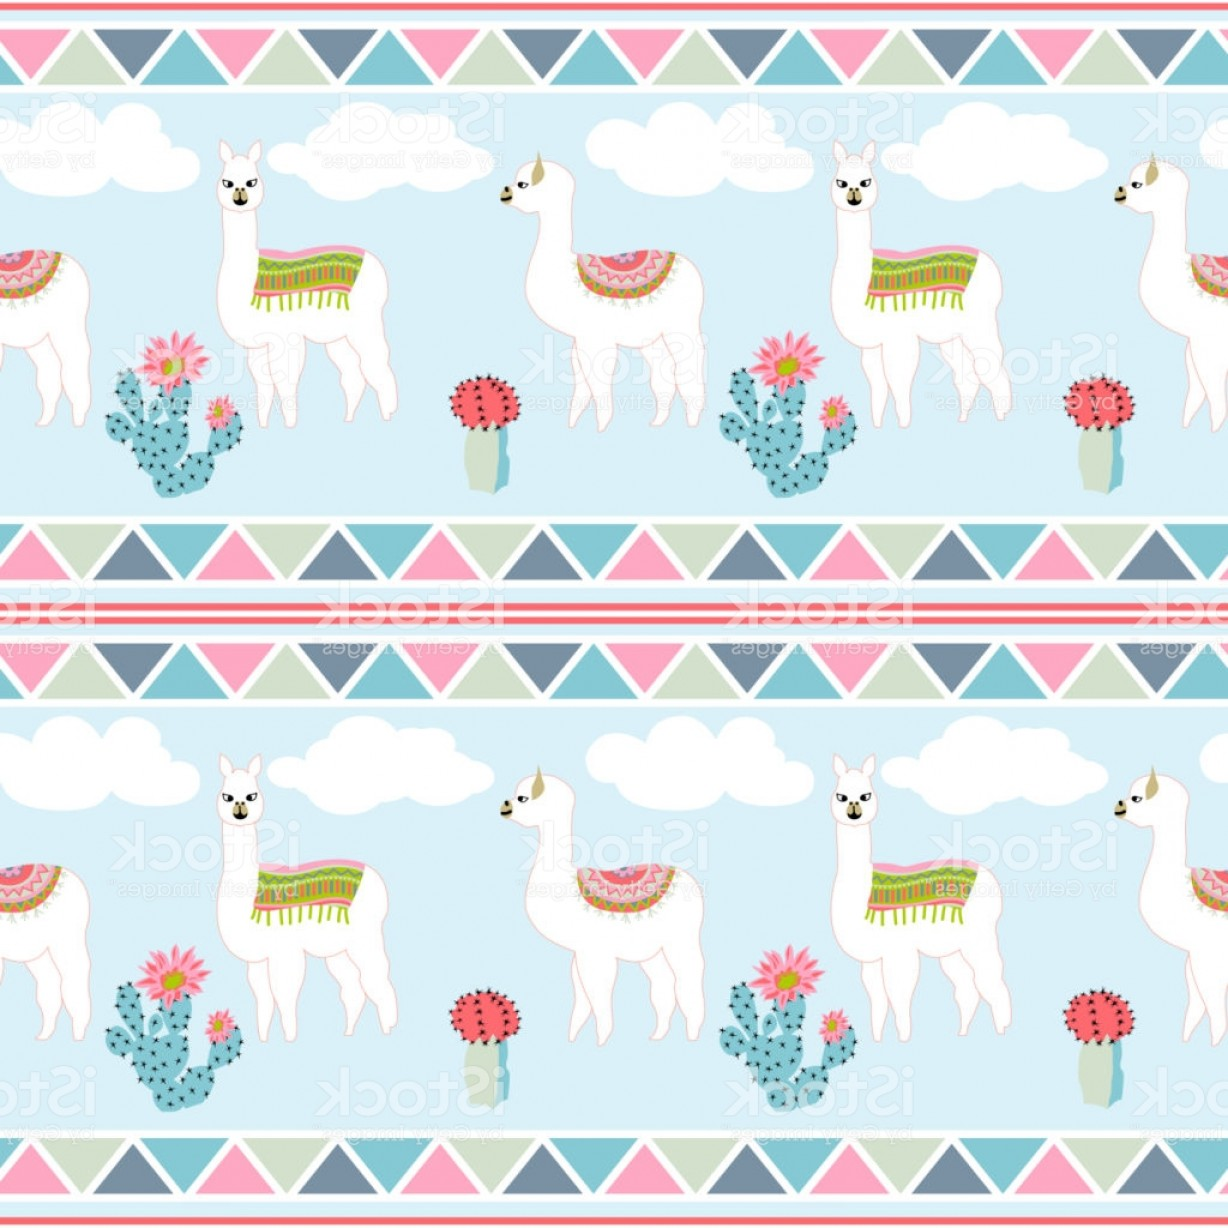 Aztec Cactus Vector: Seamless Pattern With Cute Llama Castus And Flower Llama Cactus Flower Pattern With Gm